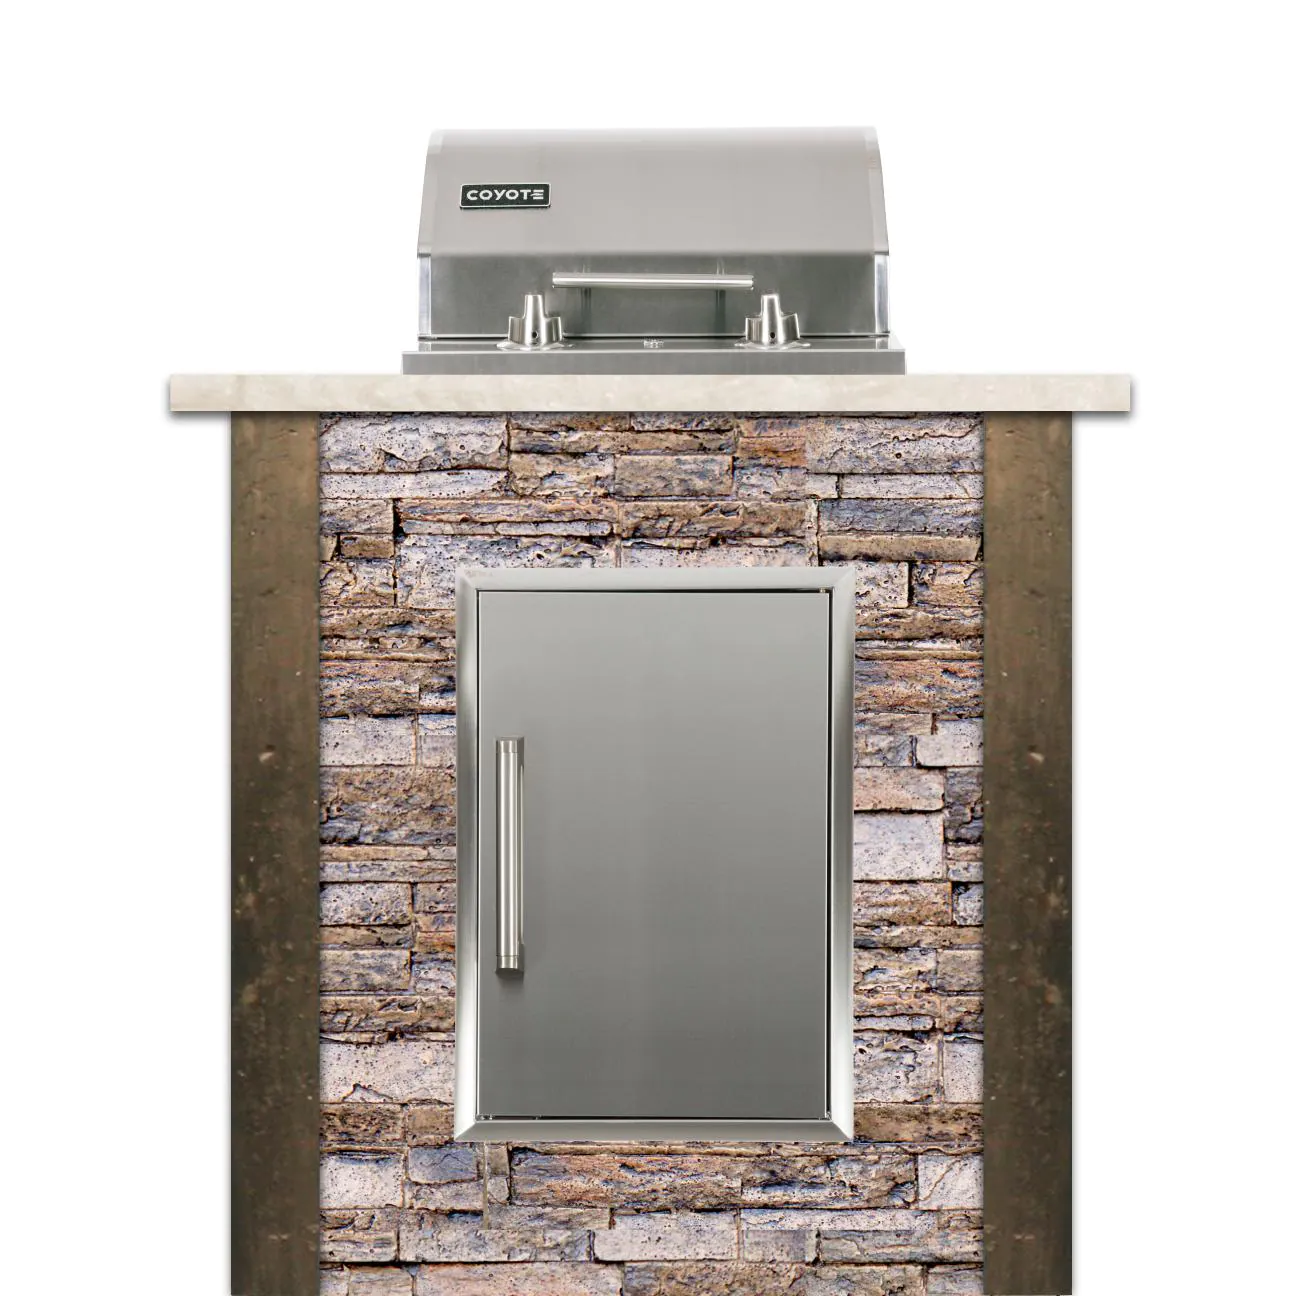 Coyote Ready-To-Assemble 3 Ft Outdoor Kitchen Island With 18-Inch Electric Grill And Access Door - Stacked Stone/Brown Terra - RTAC-E3S-SB-C1EL120SM